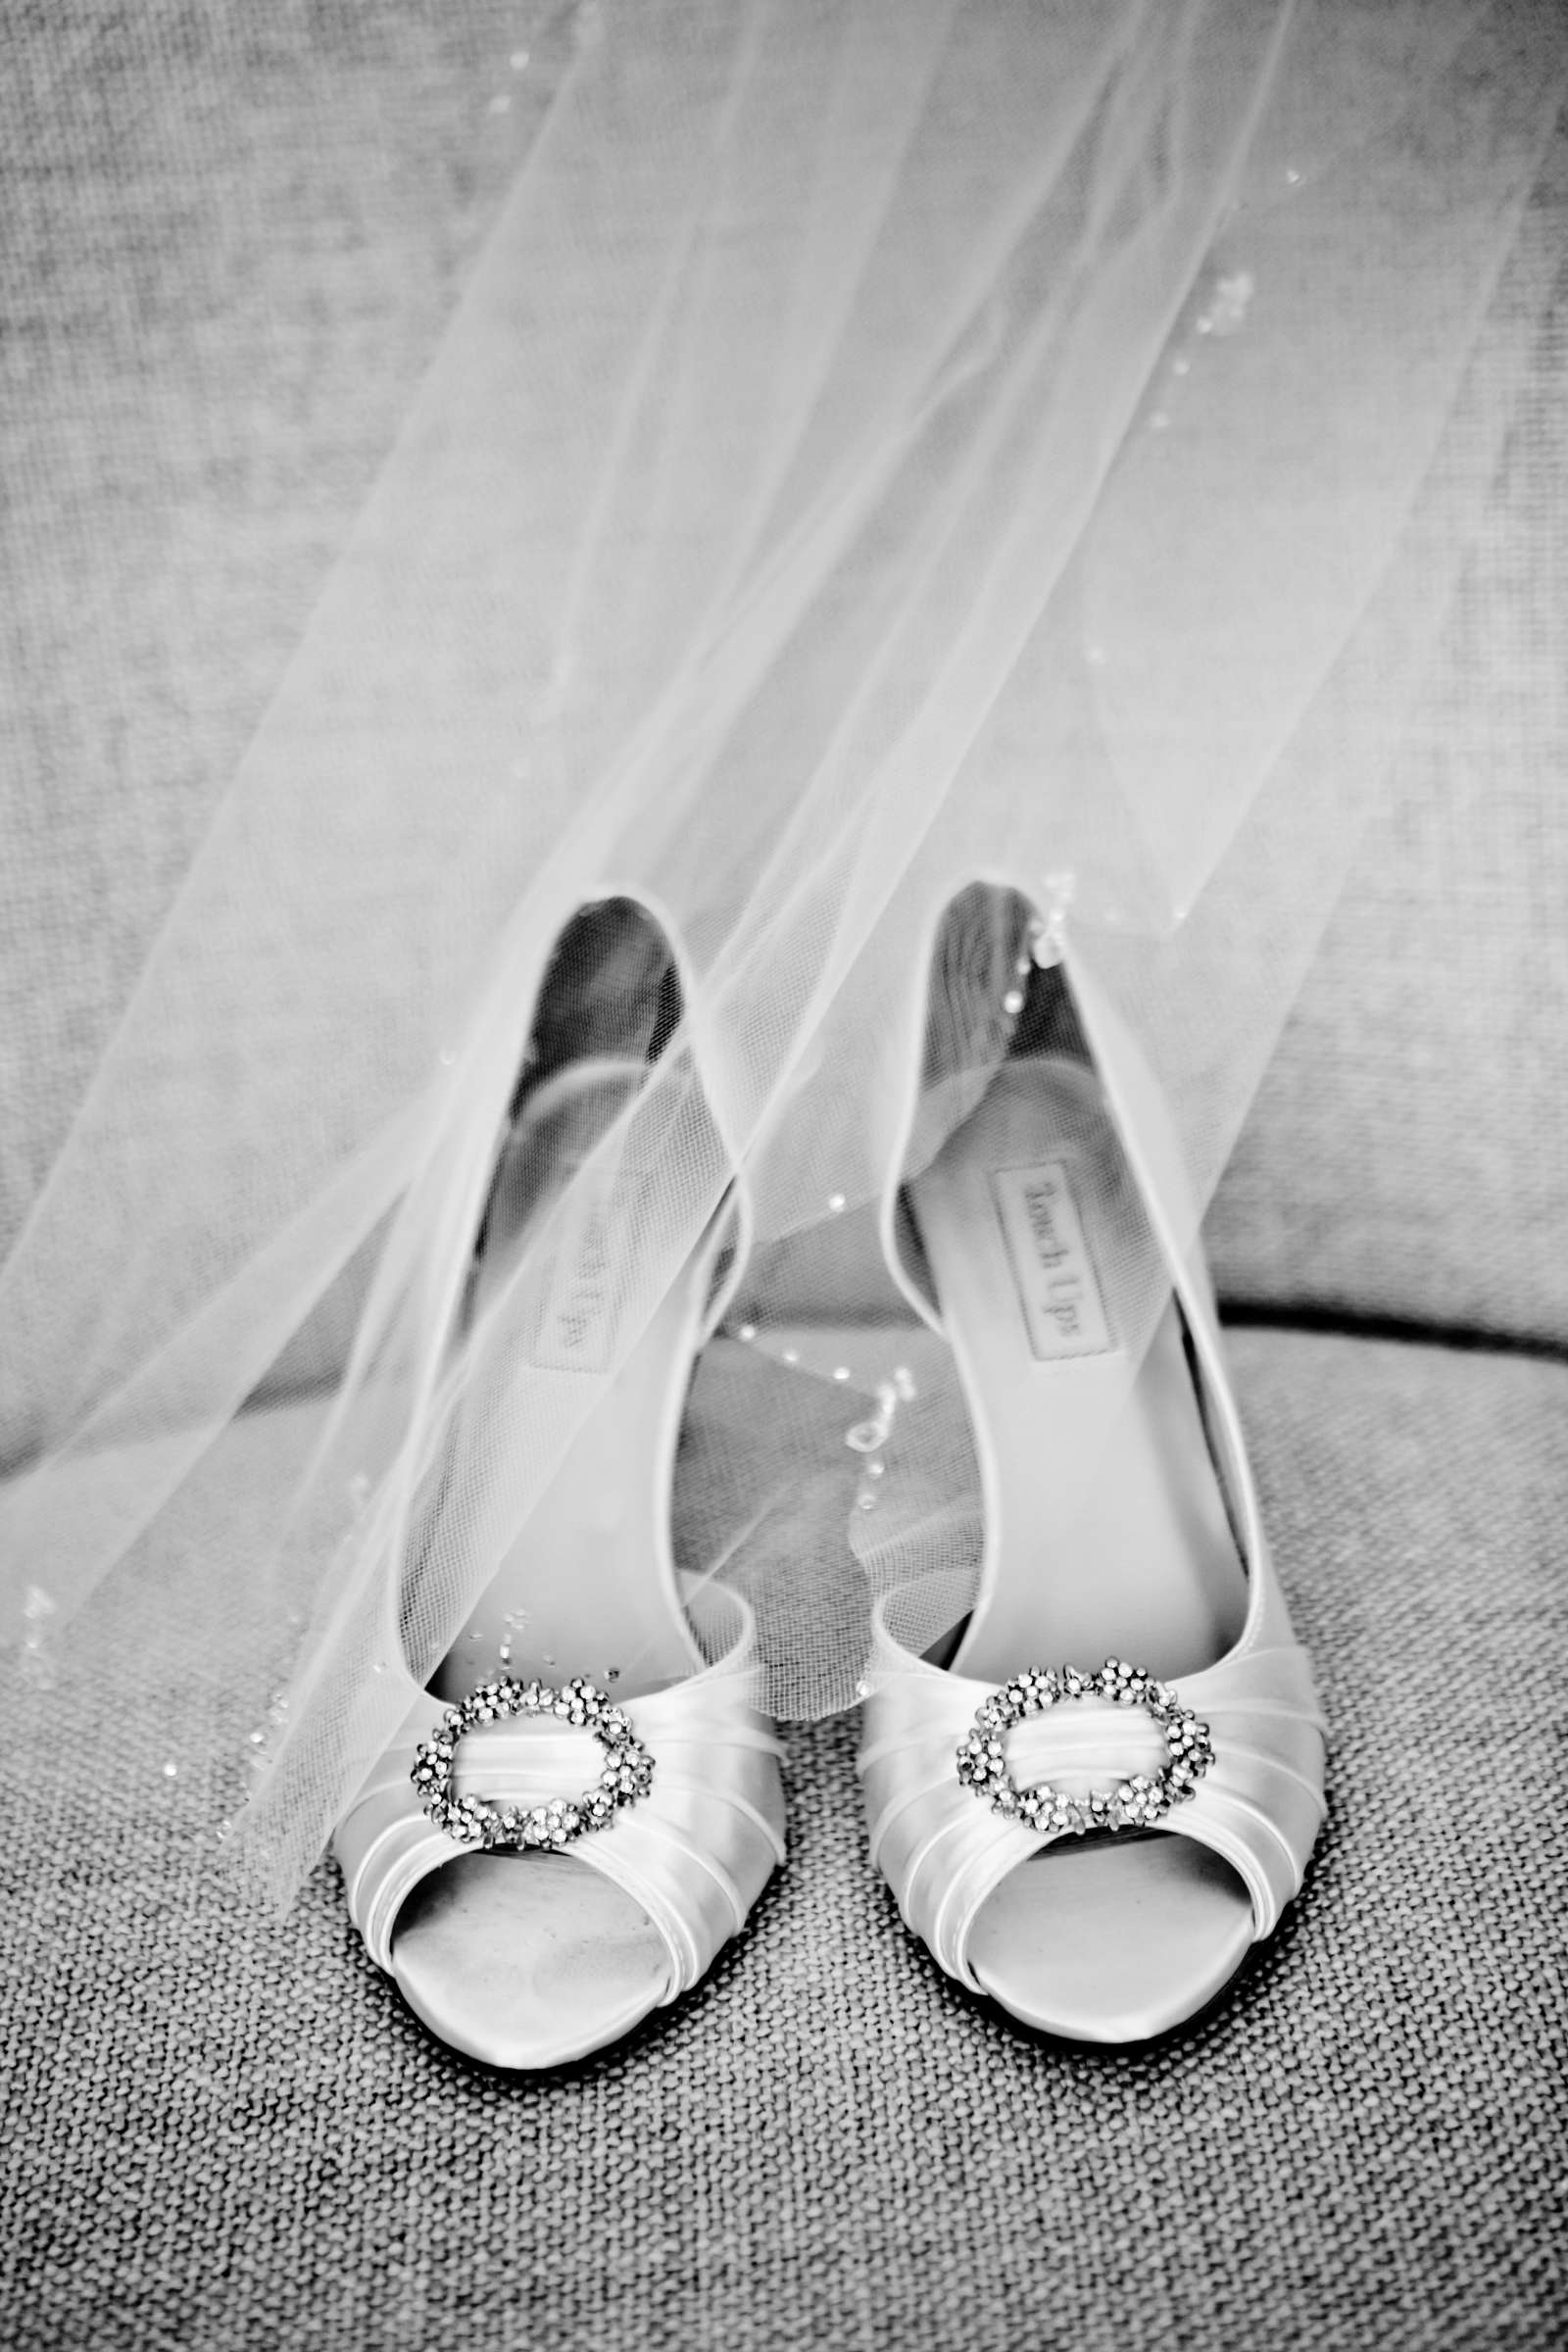 Shoes at Ultimate Skybox Wedding, Chelsea and Frank Wedding Photo #24 by True Photography